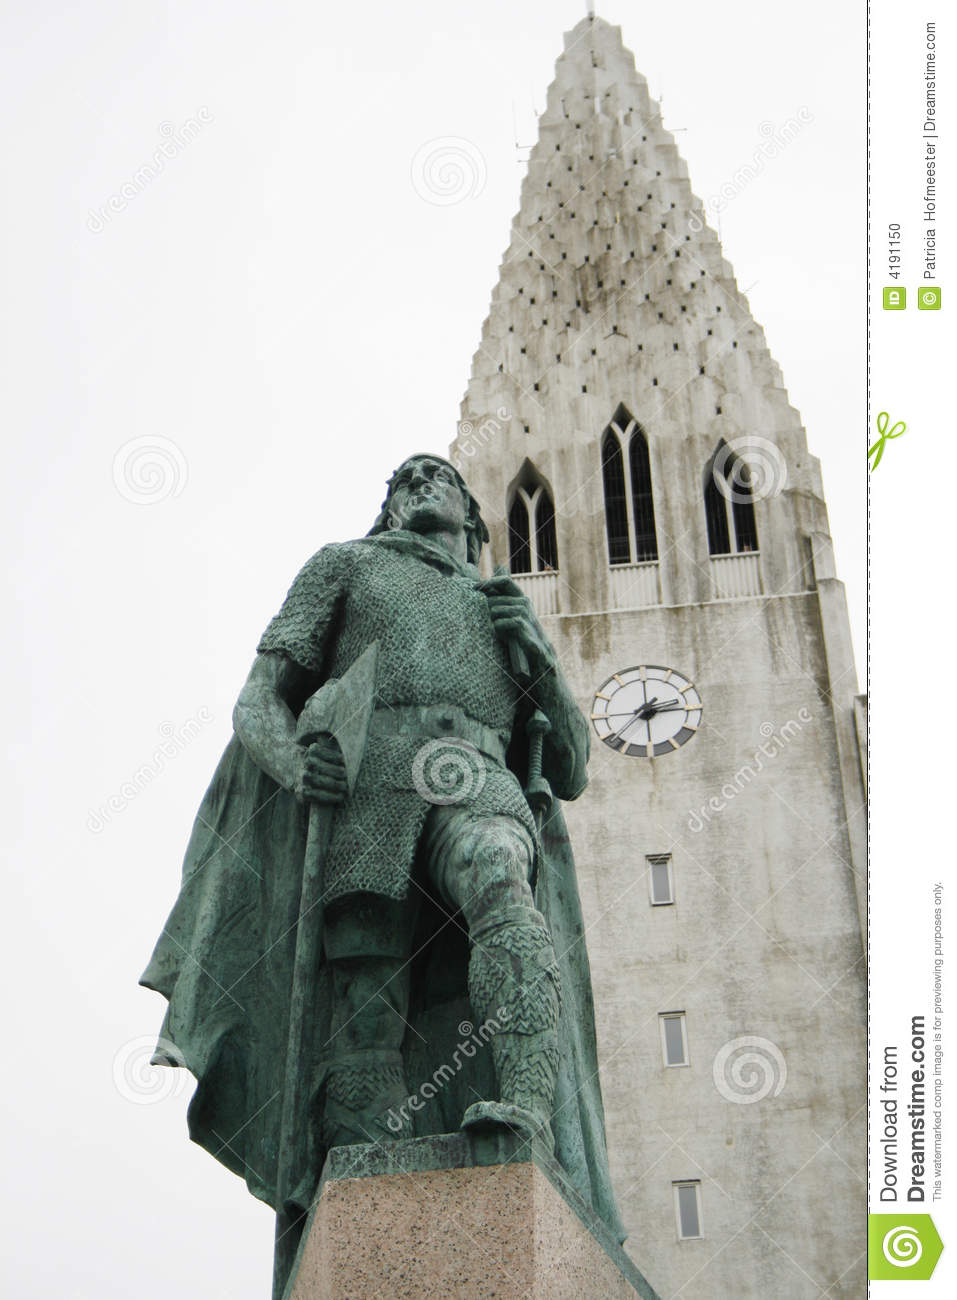 church reykjavik with statue leif eriksson stock photo Fortune Cookie Boarder Fortune Cookie Border